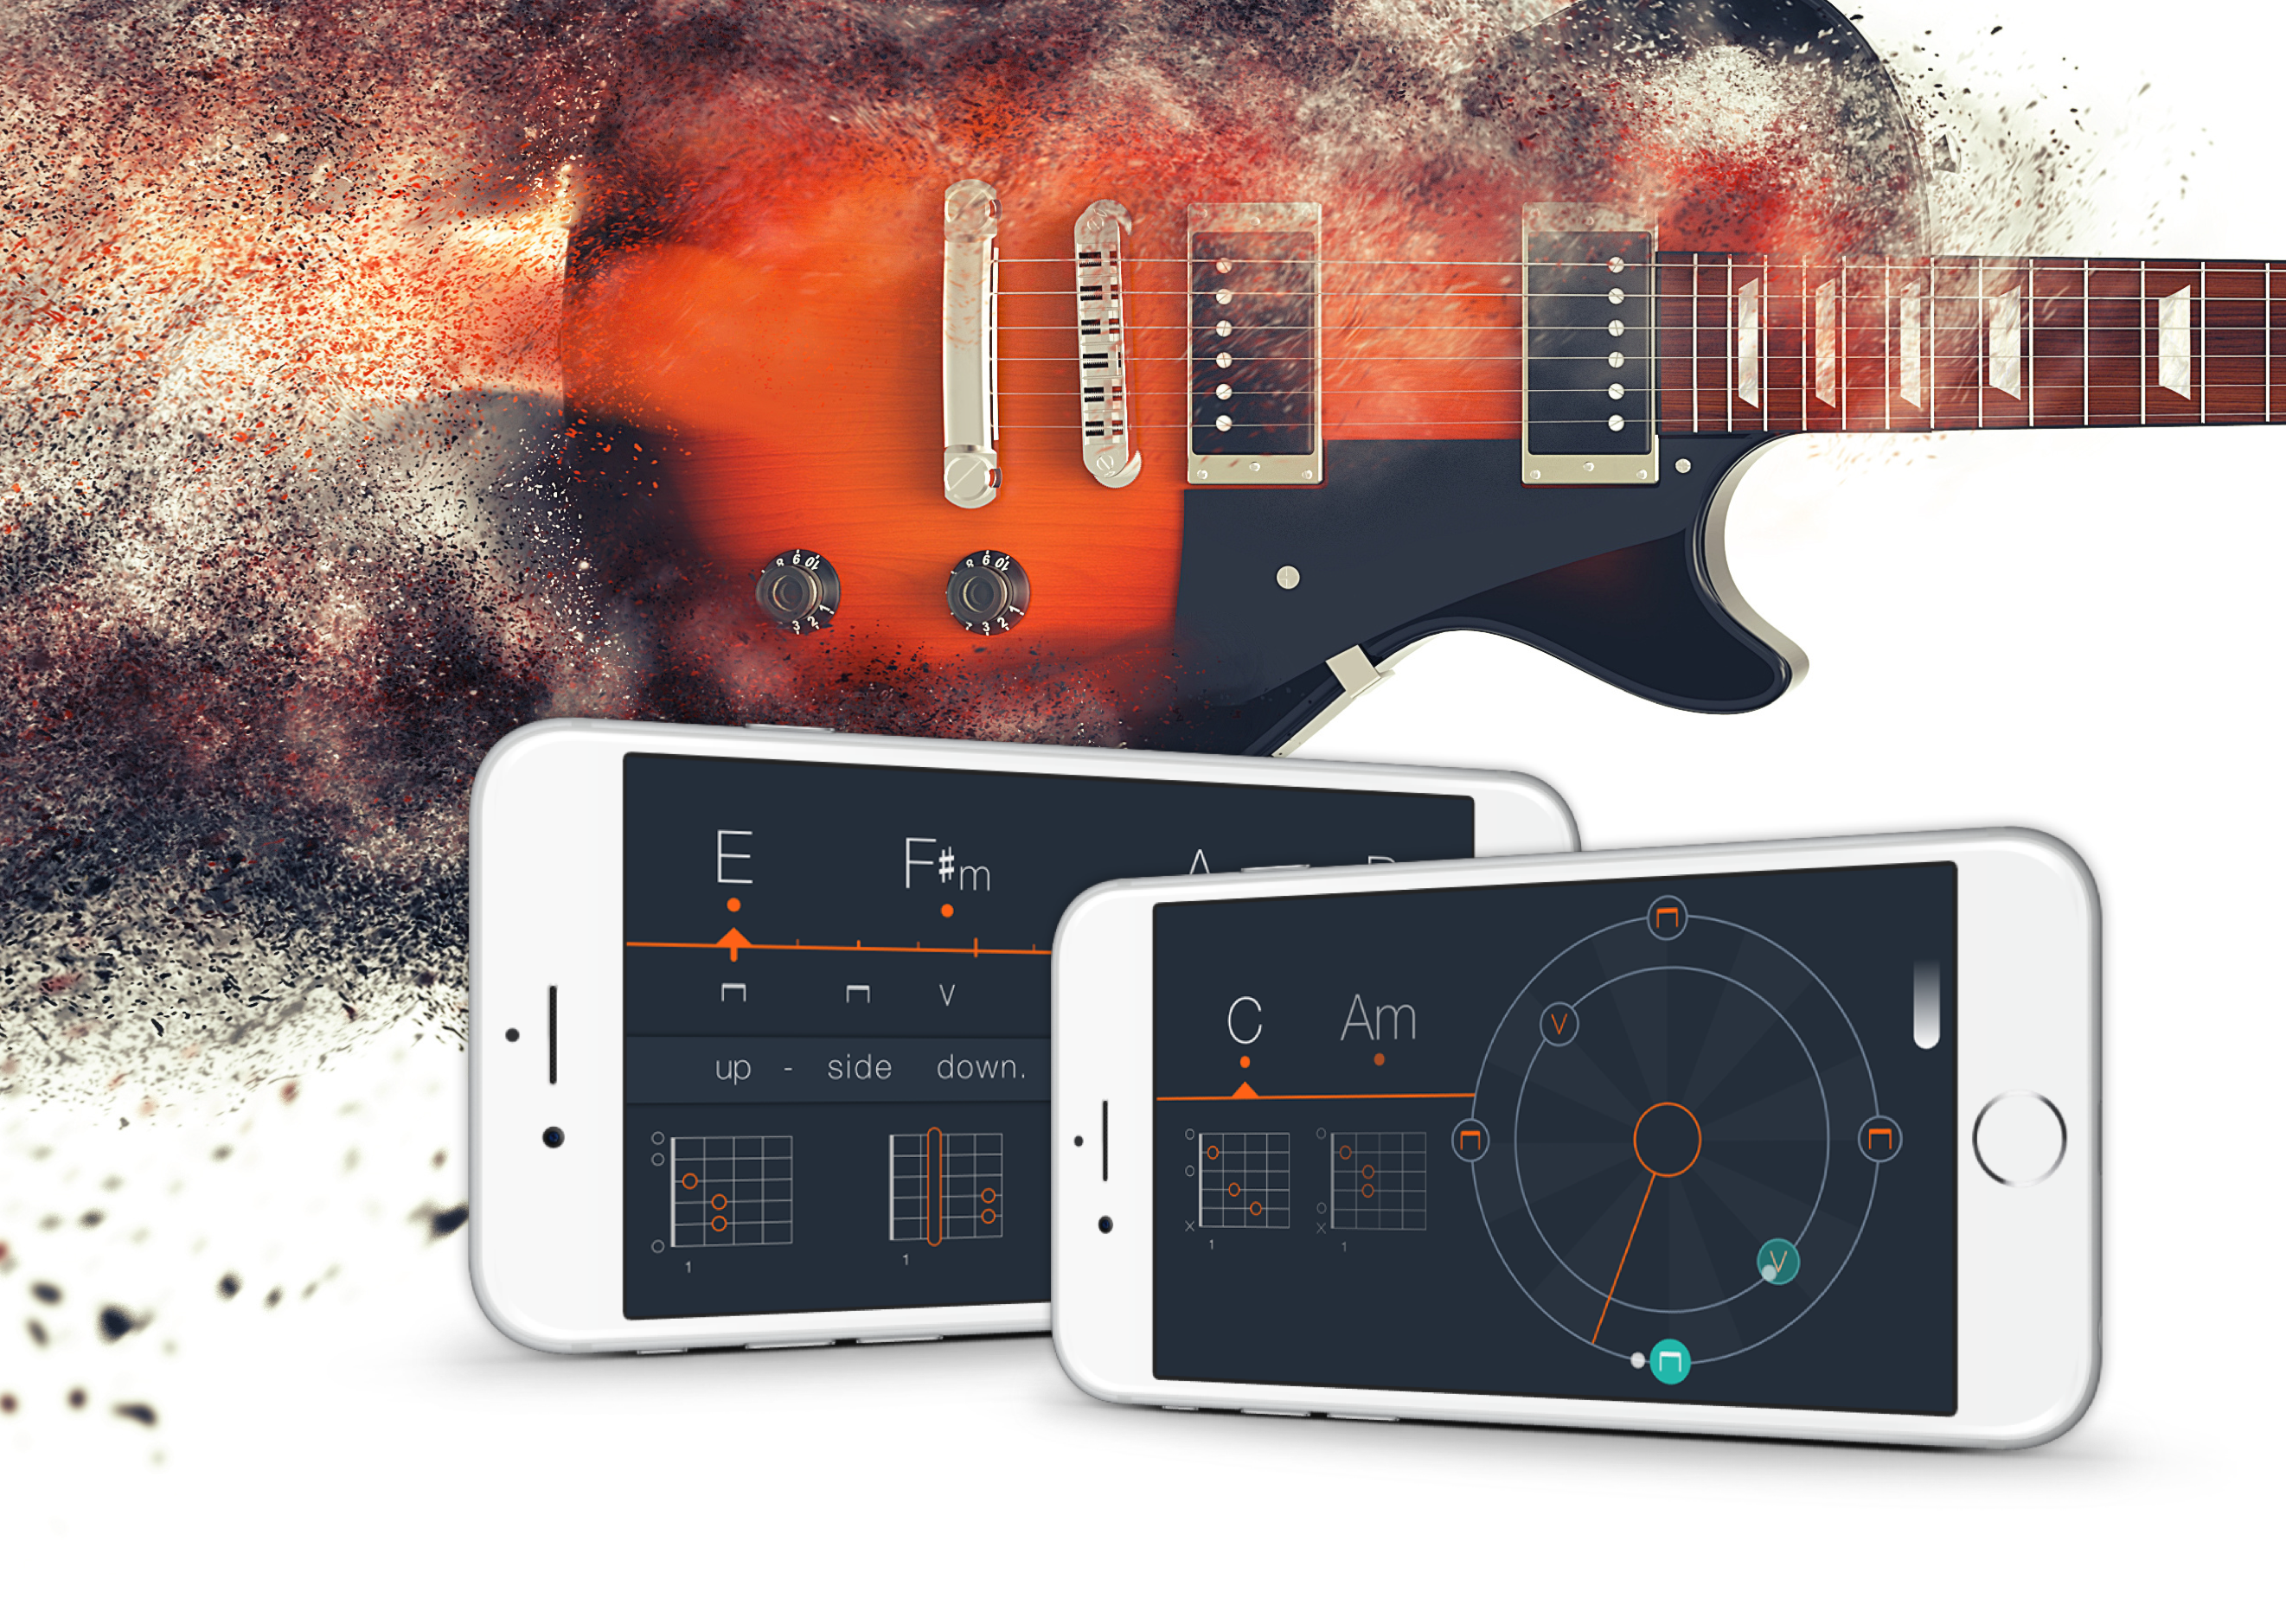 Uberchord 2 Introducing Songs Worlds First Strumming Trainer